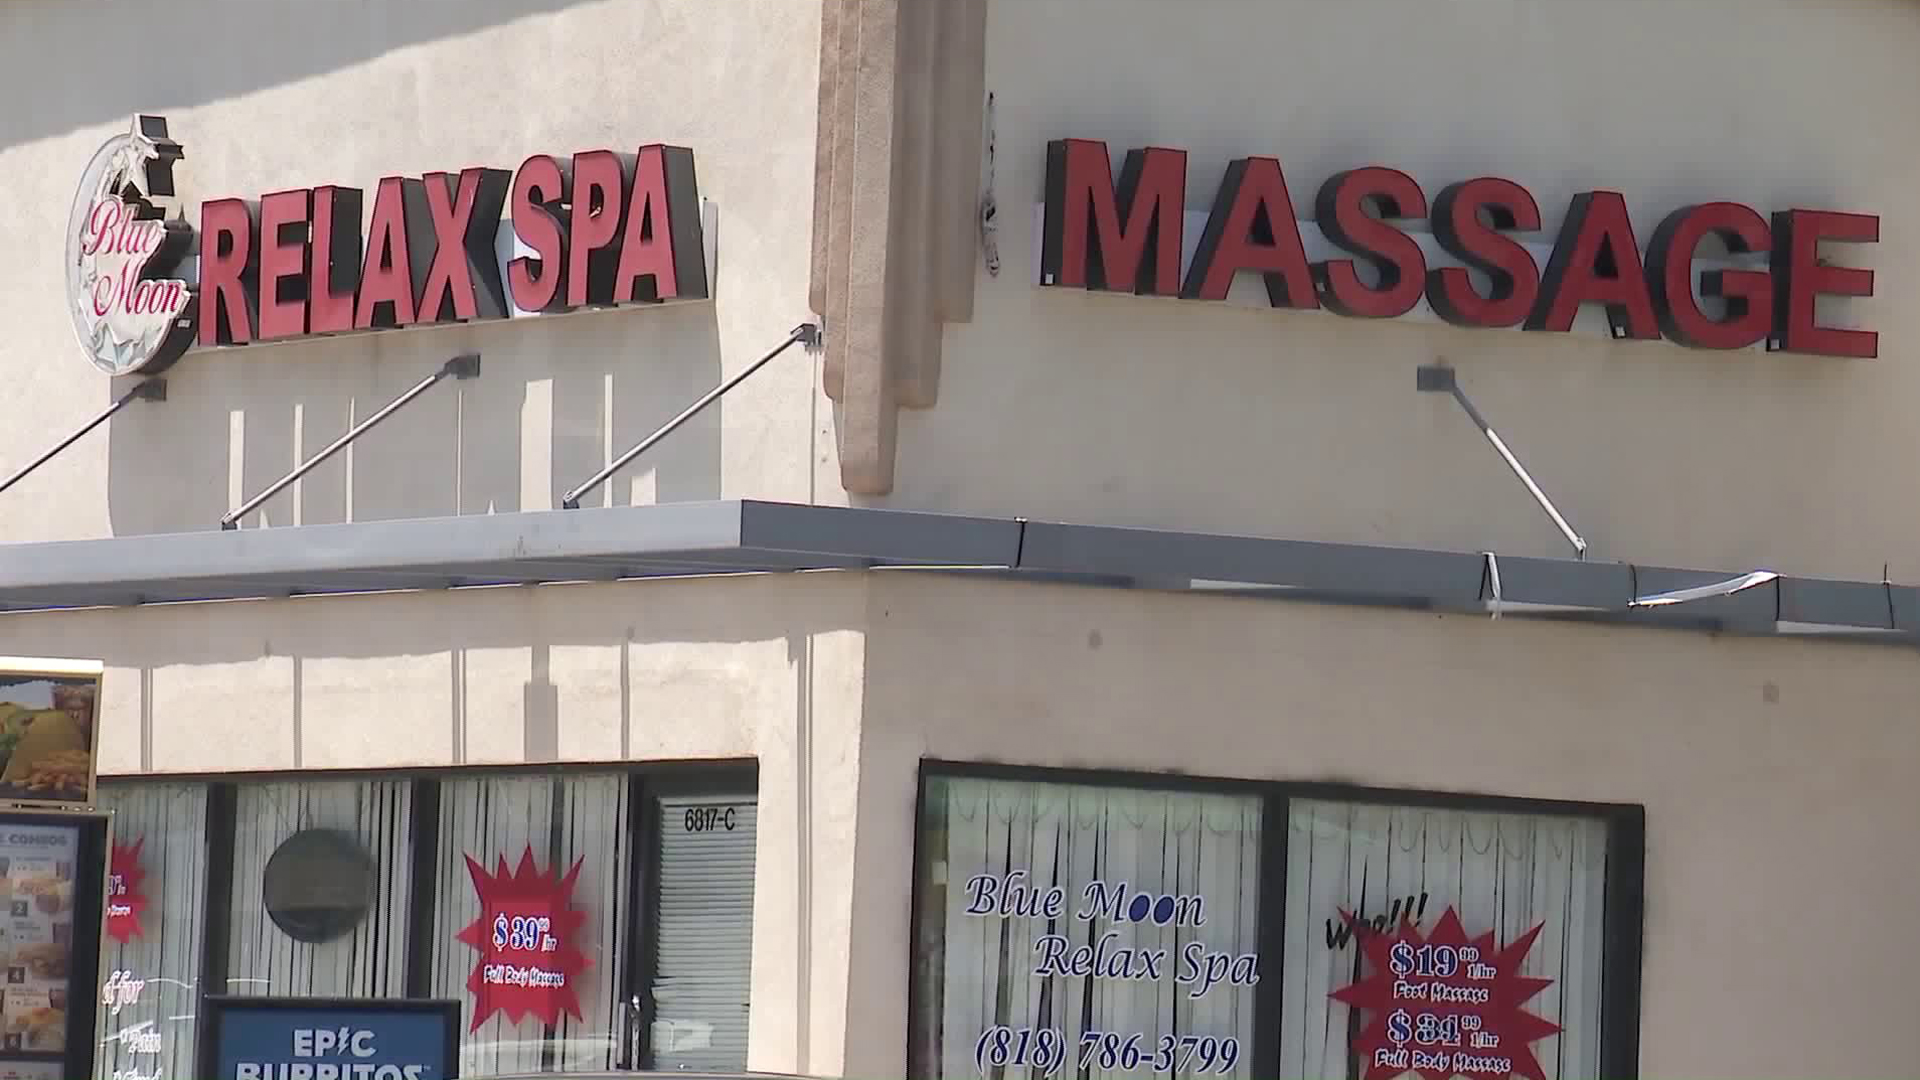 The Blue Moon Relax spa in Van Nuys is seen on May 28, 2019. (Credit: KTLA)